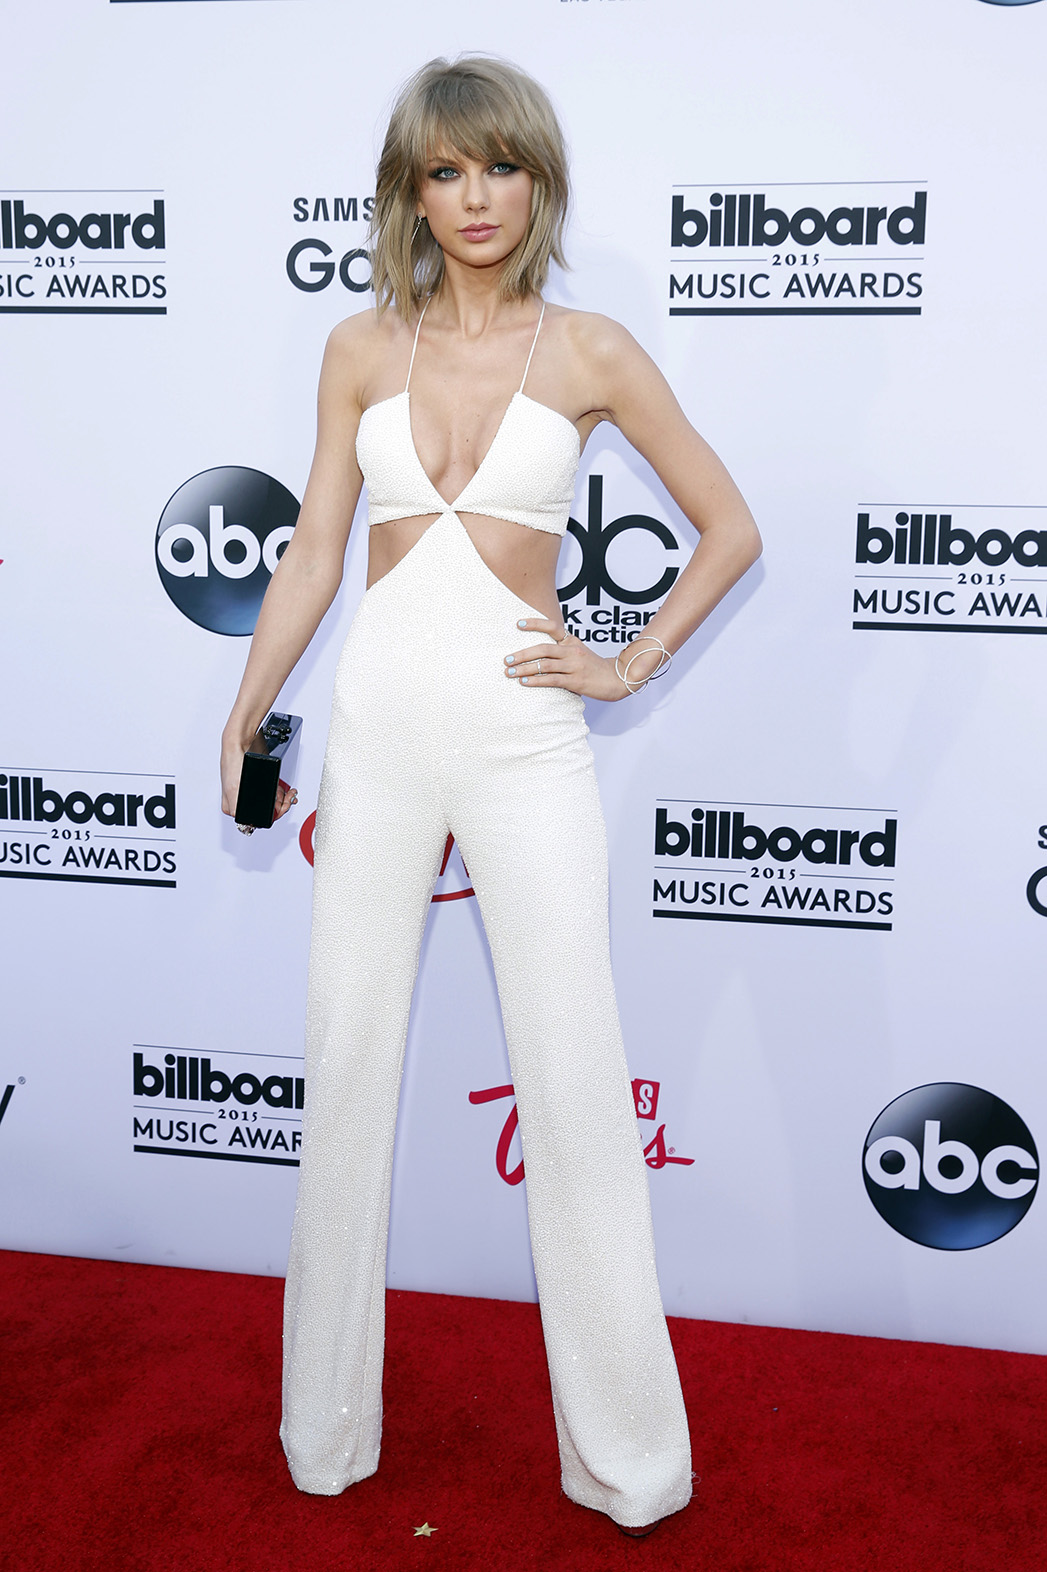 Taylor Swift S Bbmas Jumpsuit Sparks Controversy Hollywood Reporter